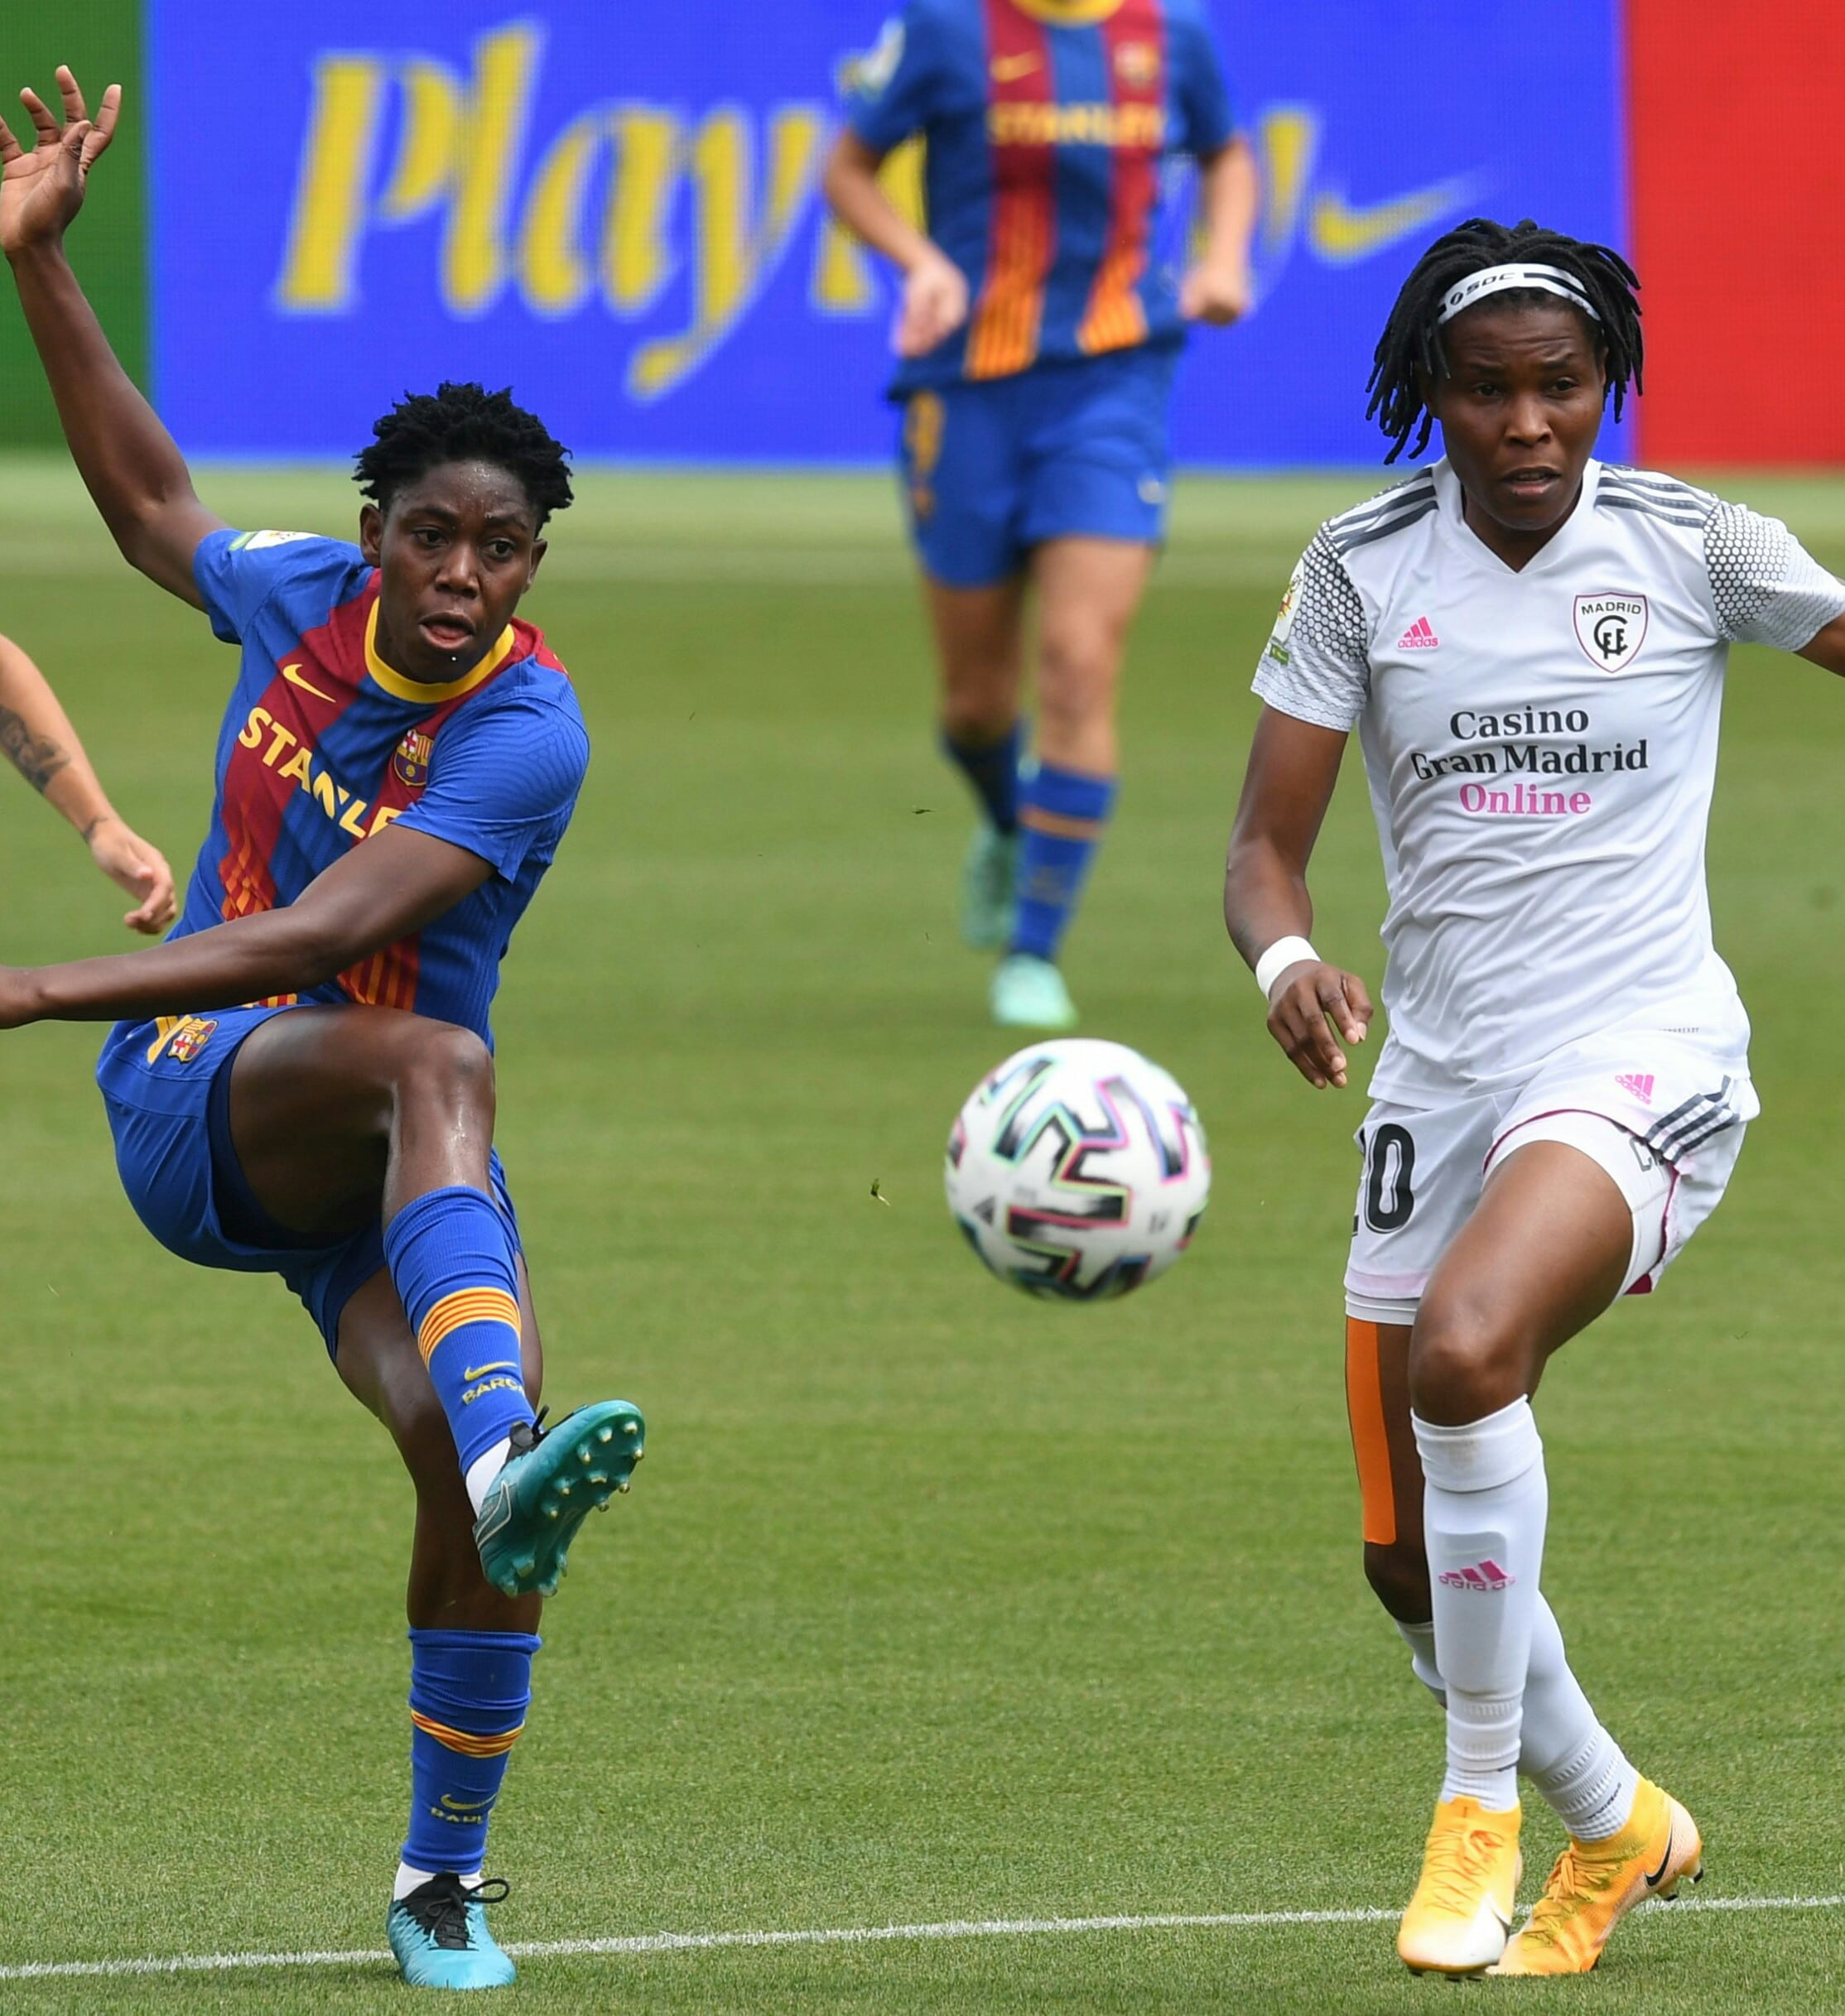 Falcons Star Ohale Scores, Oshoala, Chikwelu In Action As Barca Edge Madrid